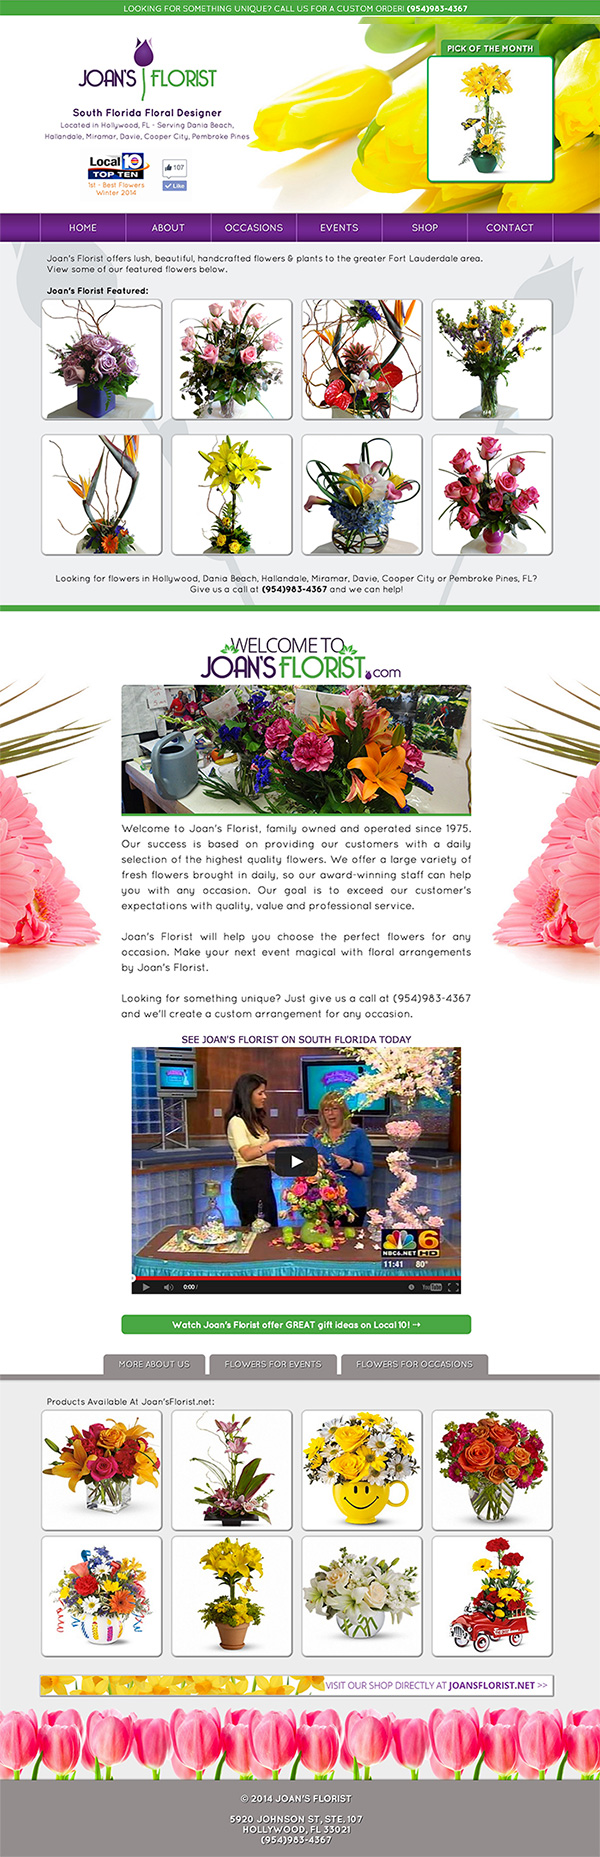 joans-florist-website-design